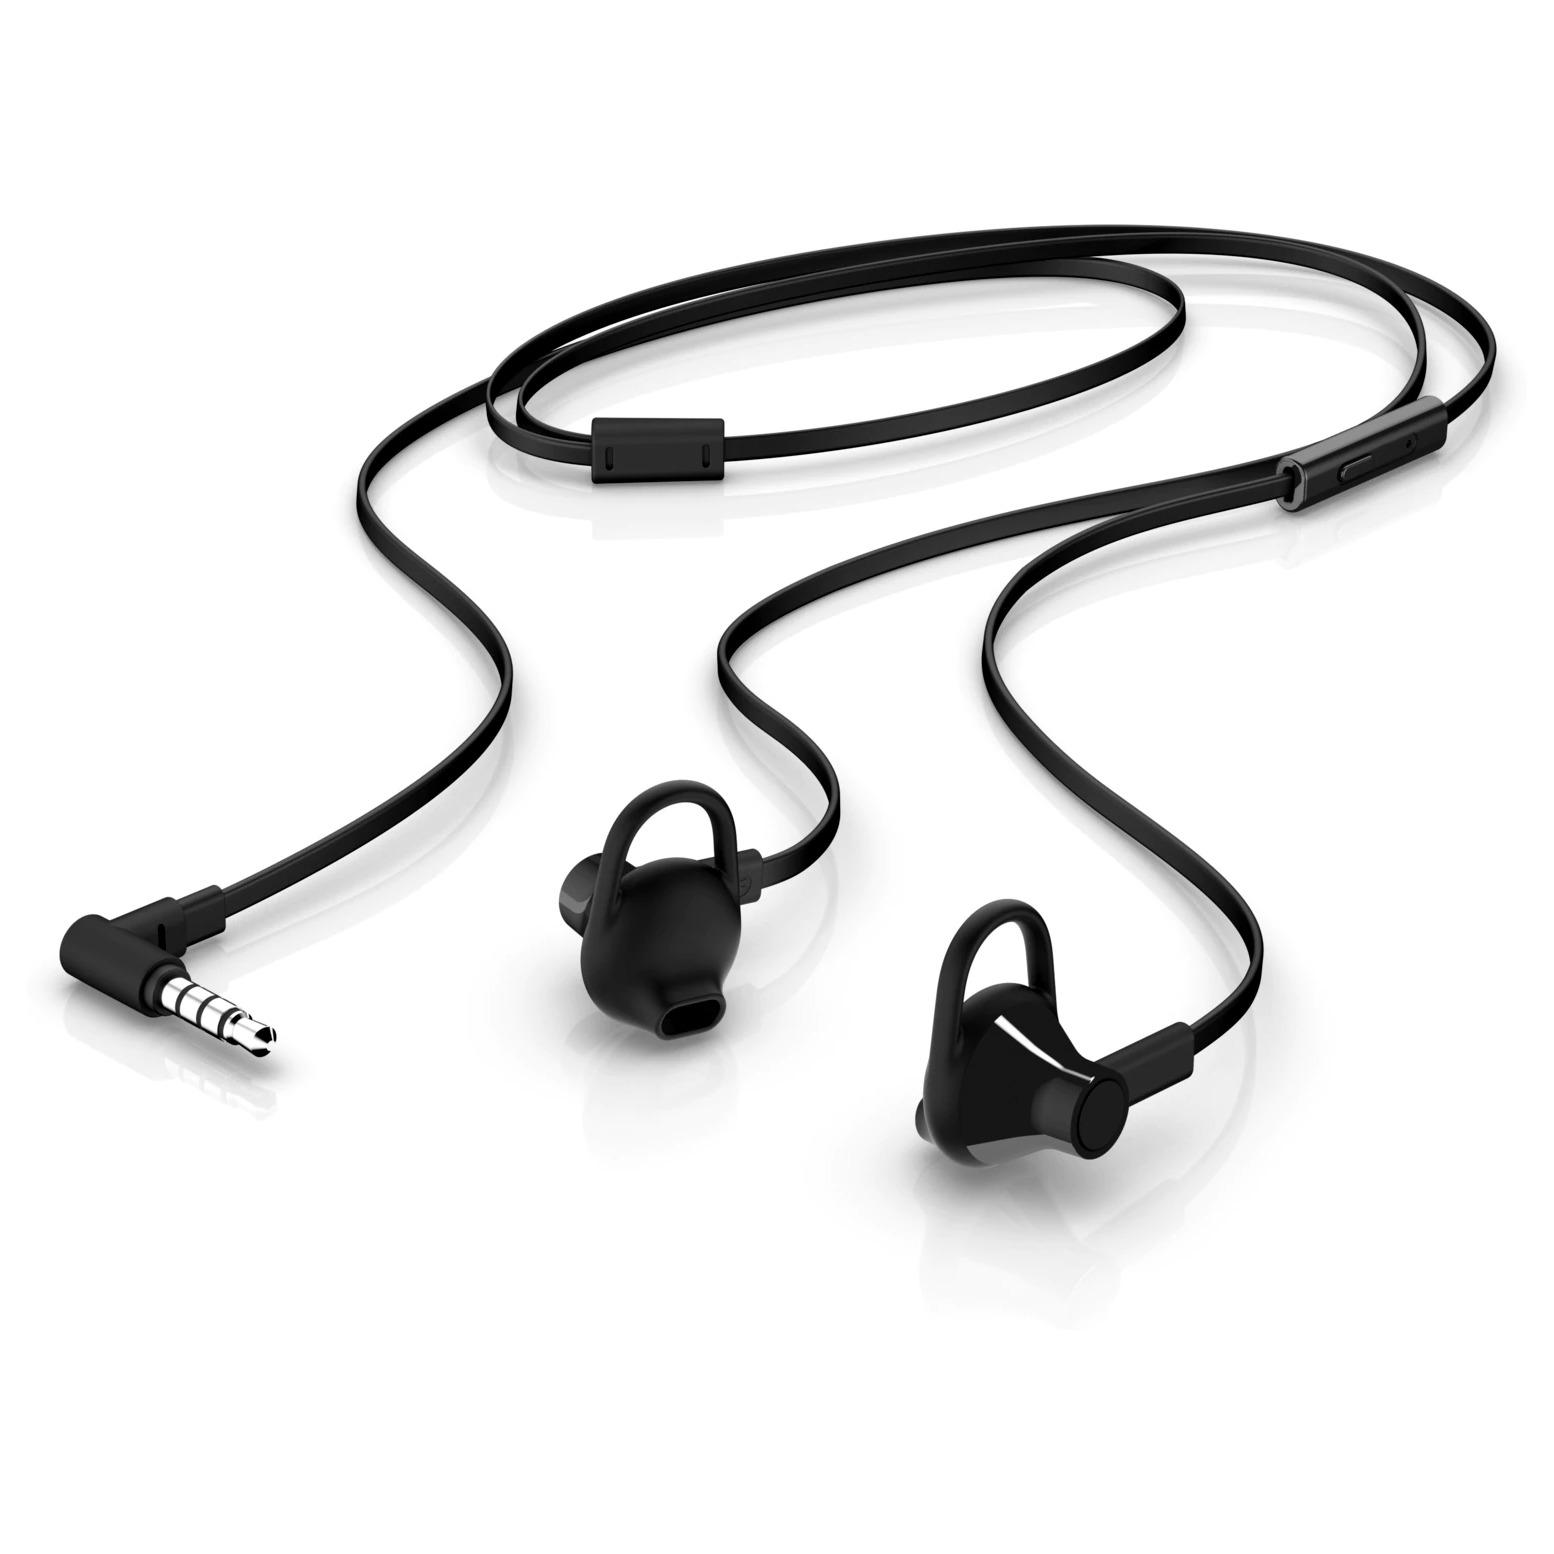 Price Hp Earbuds Black Headset 150 On Singapore